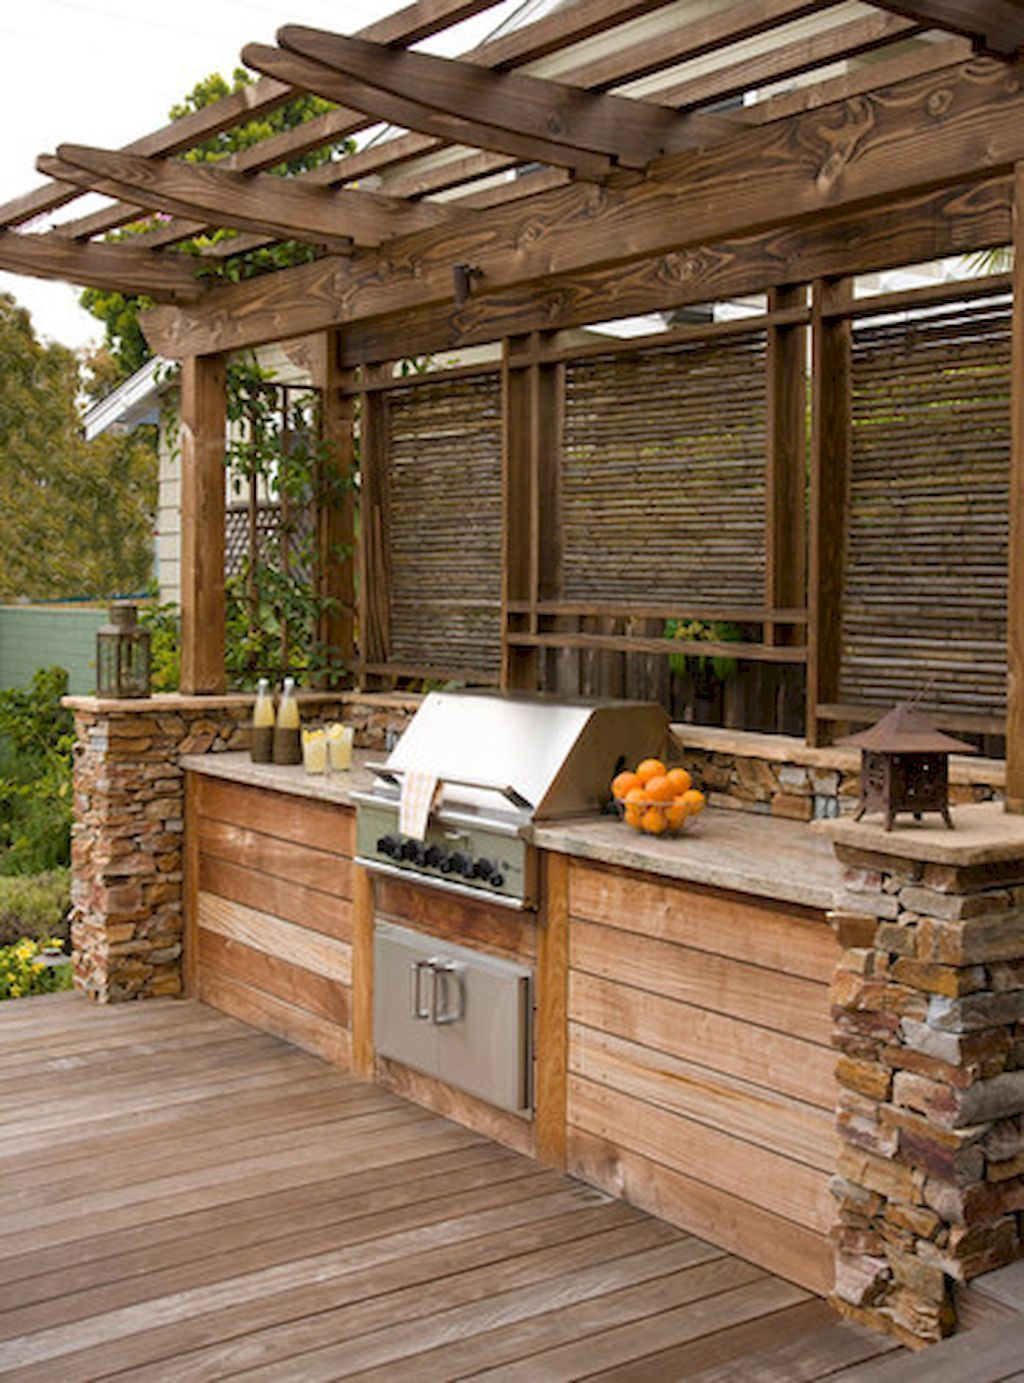 25 outdoor kitchen design and ideas for your stunning for Rustic outdoor kitchen ideas